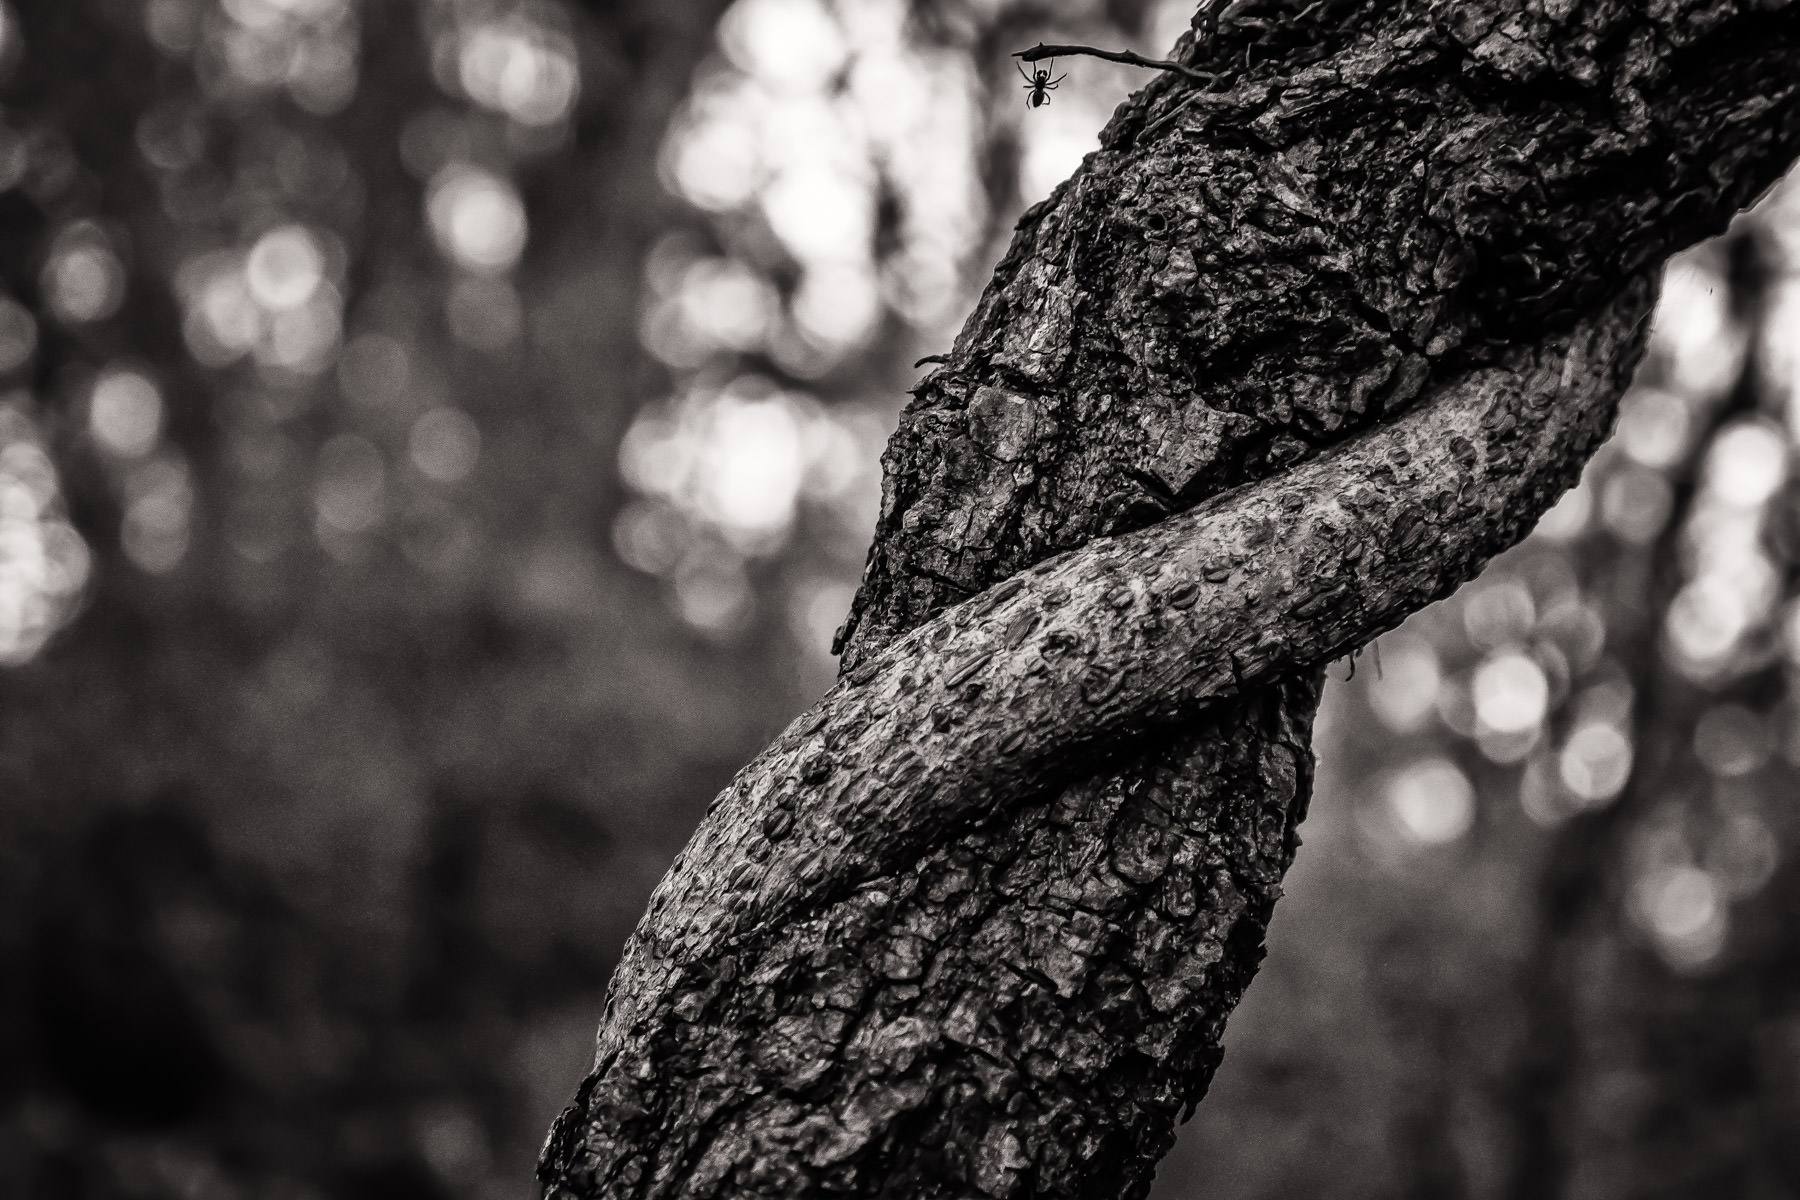 A spider clings to a twig on a vine-wrapped branch of a tree in Dallas' Great Trinity Forest.